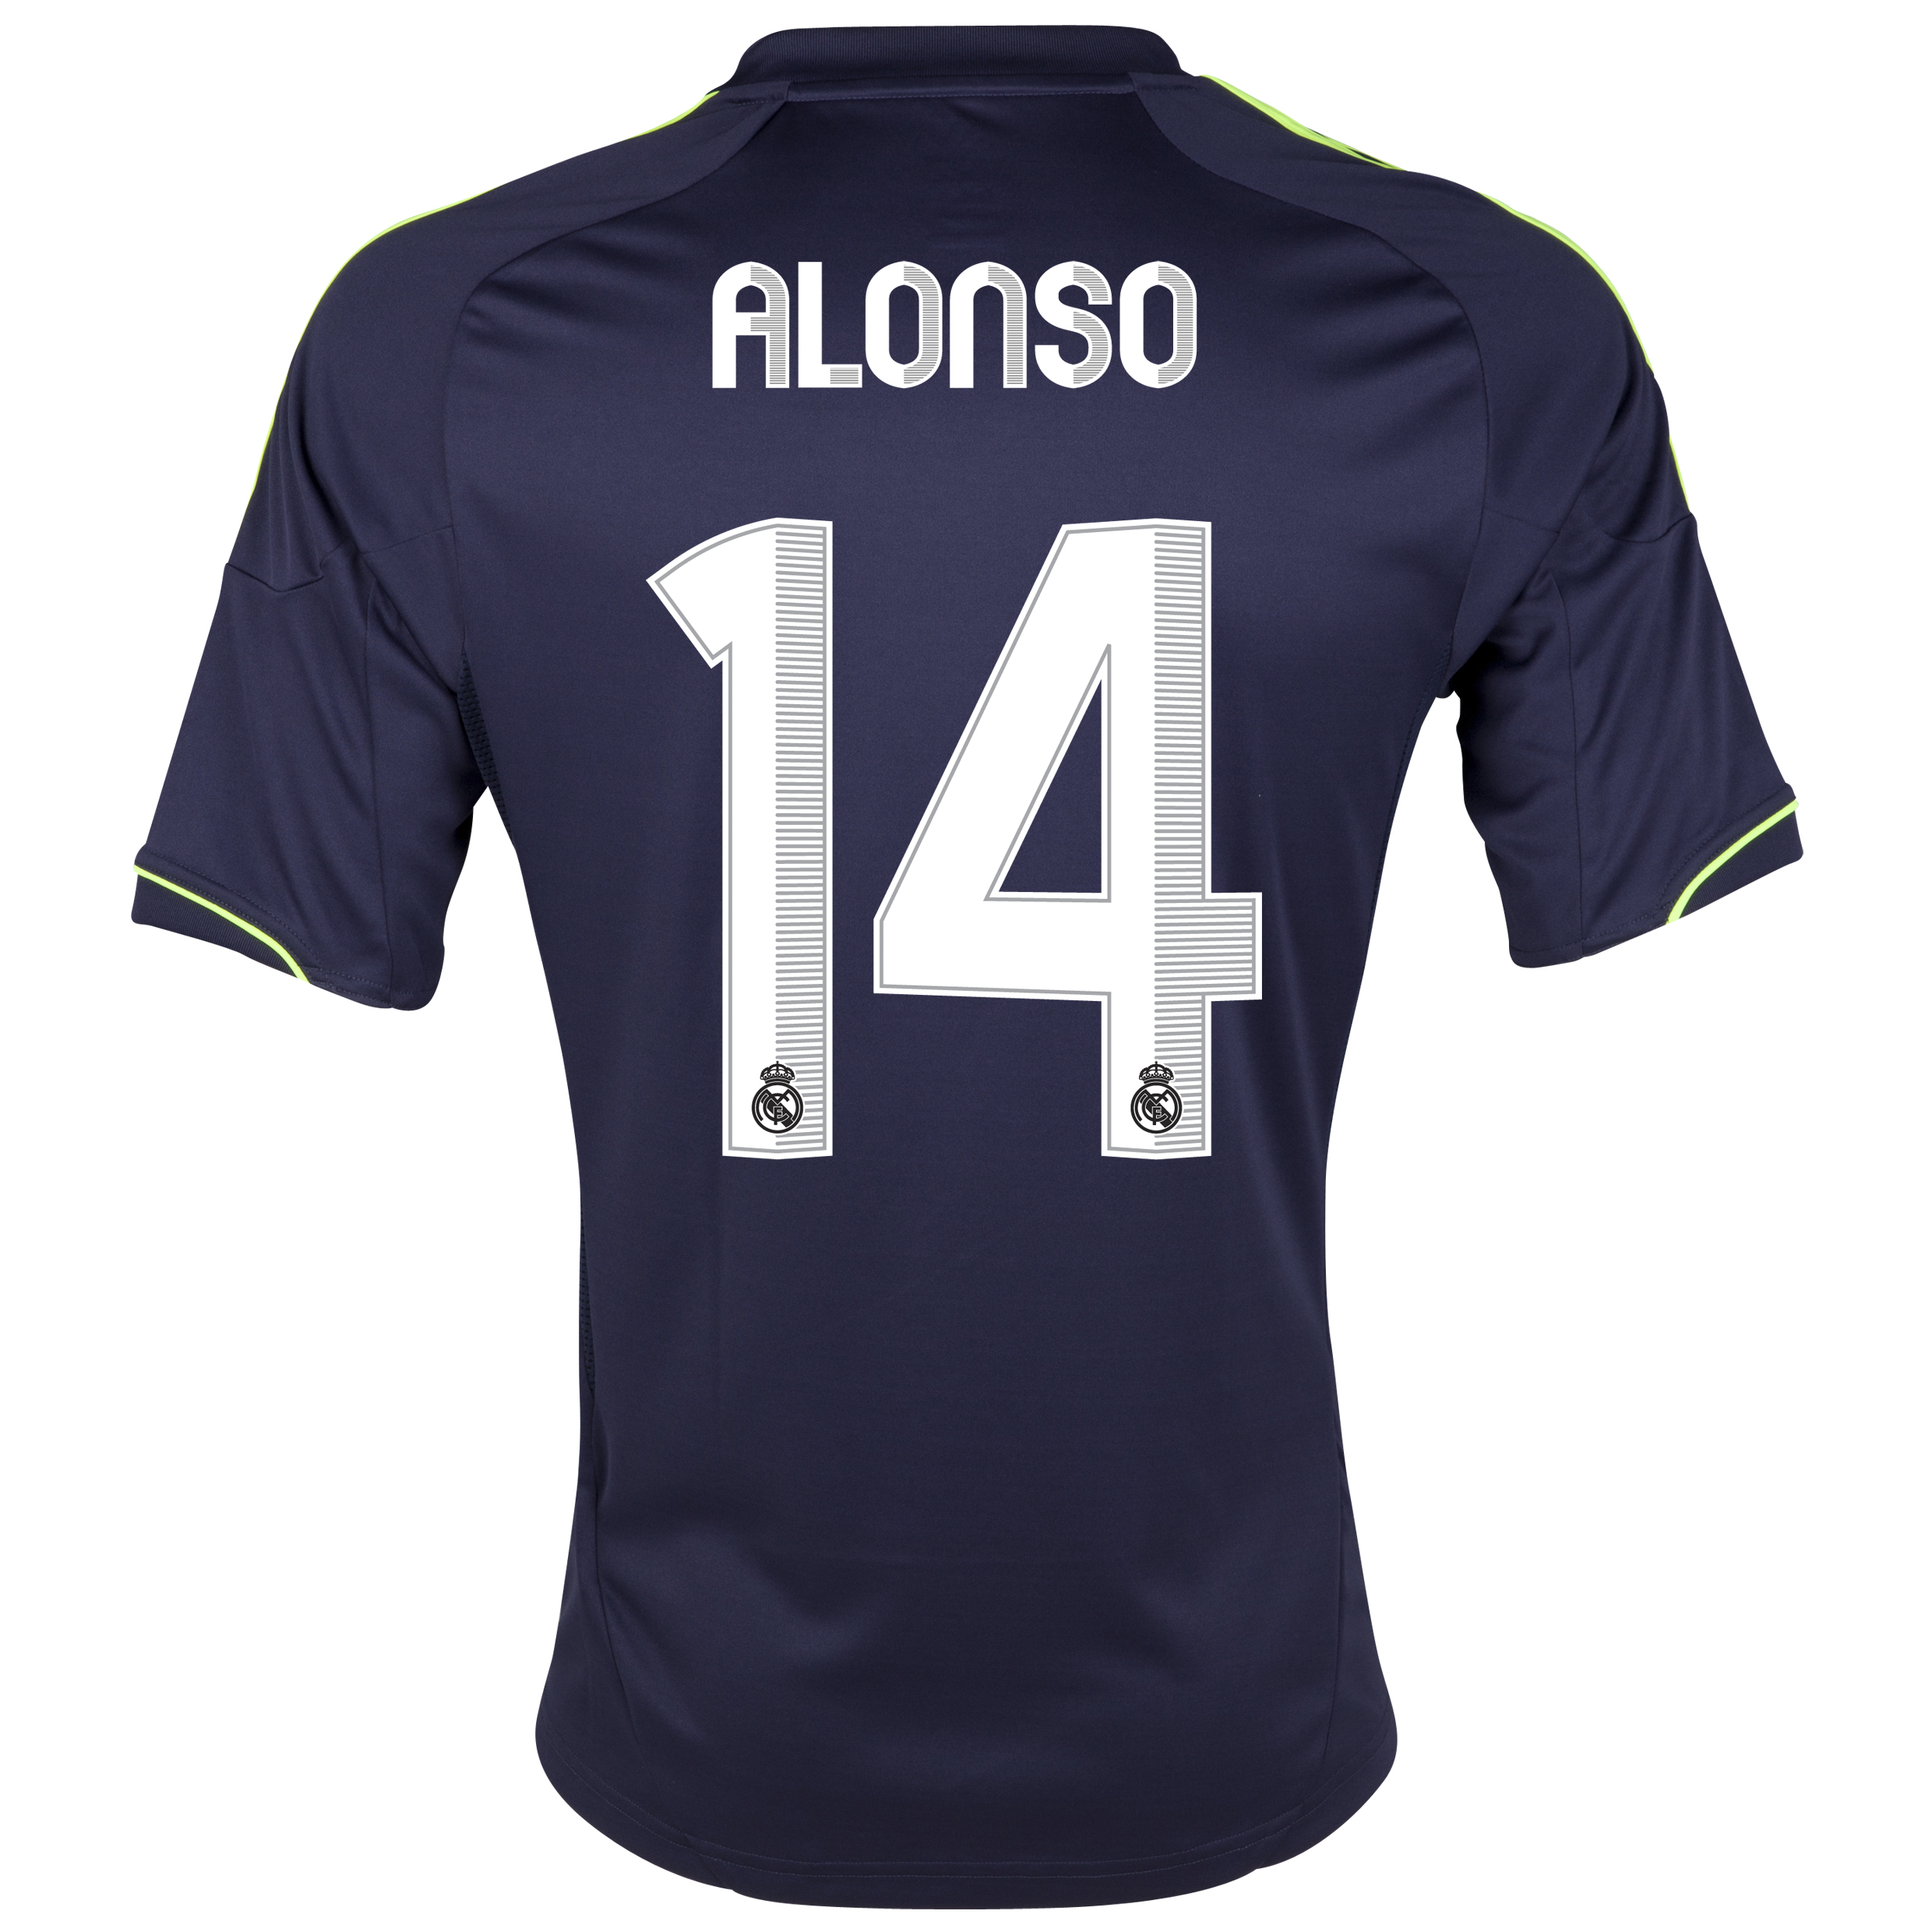 Real Madrid Away Shirt 2012/13 with Alonso 14 printing